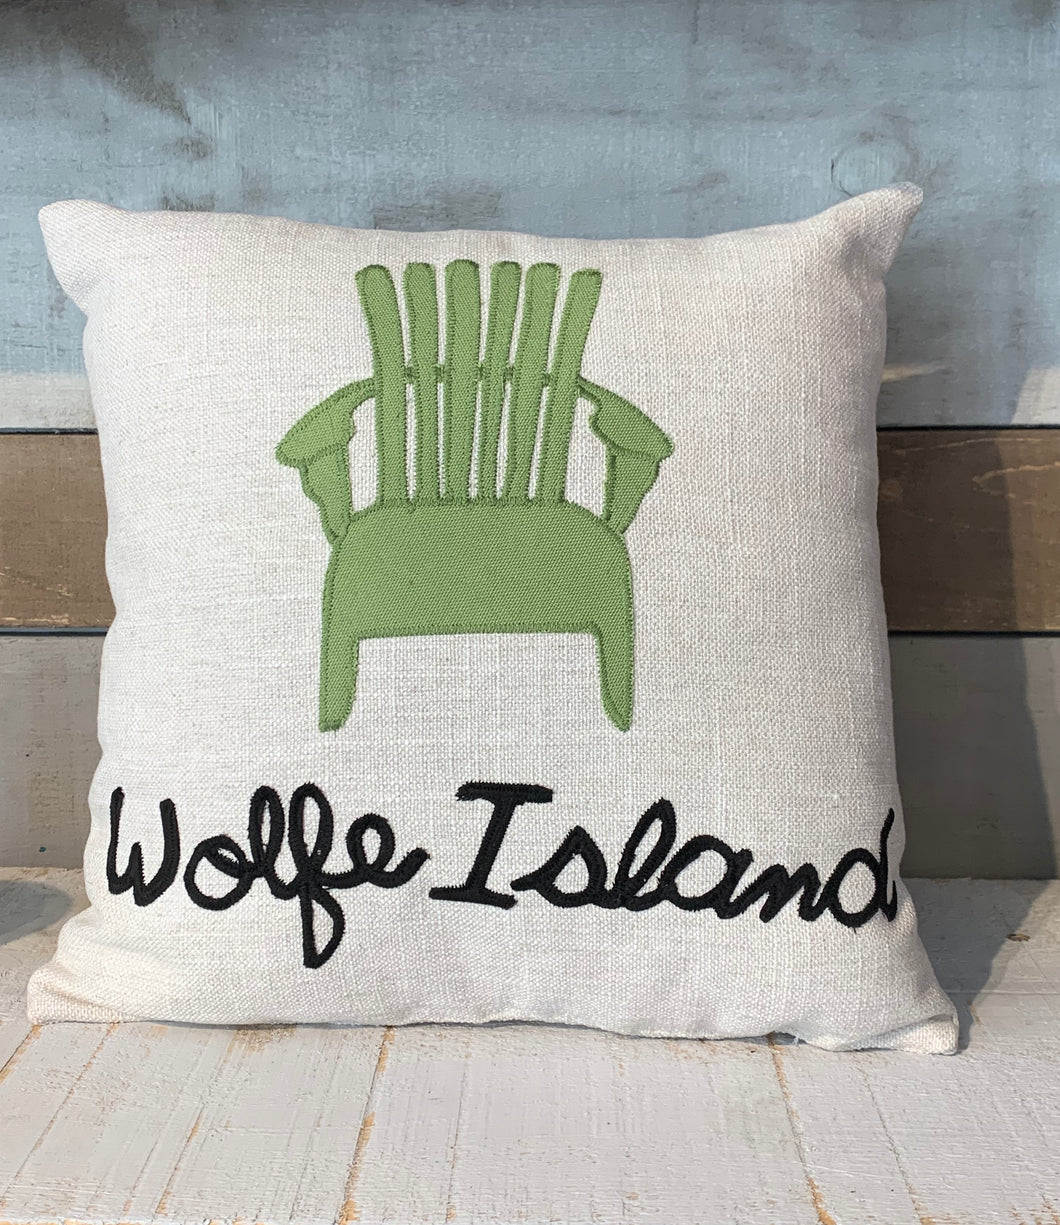 WOLFE ISLAND PILLOW